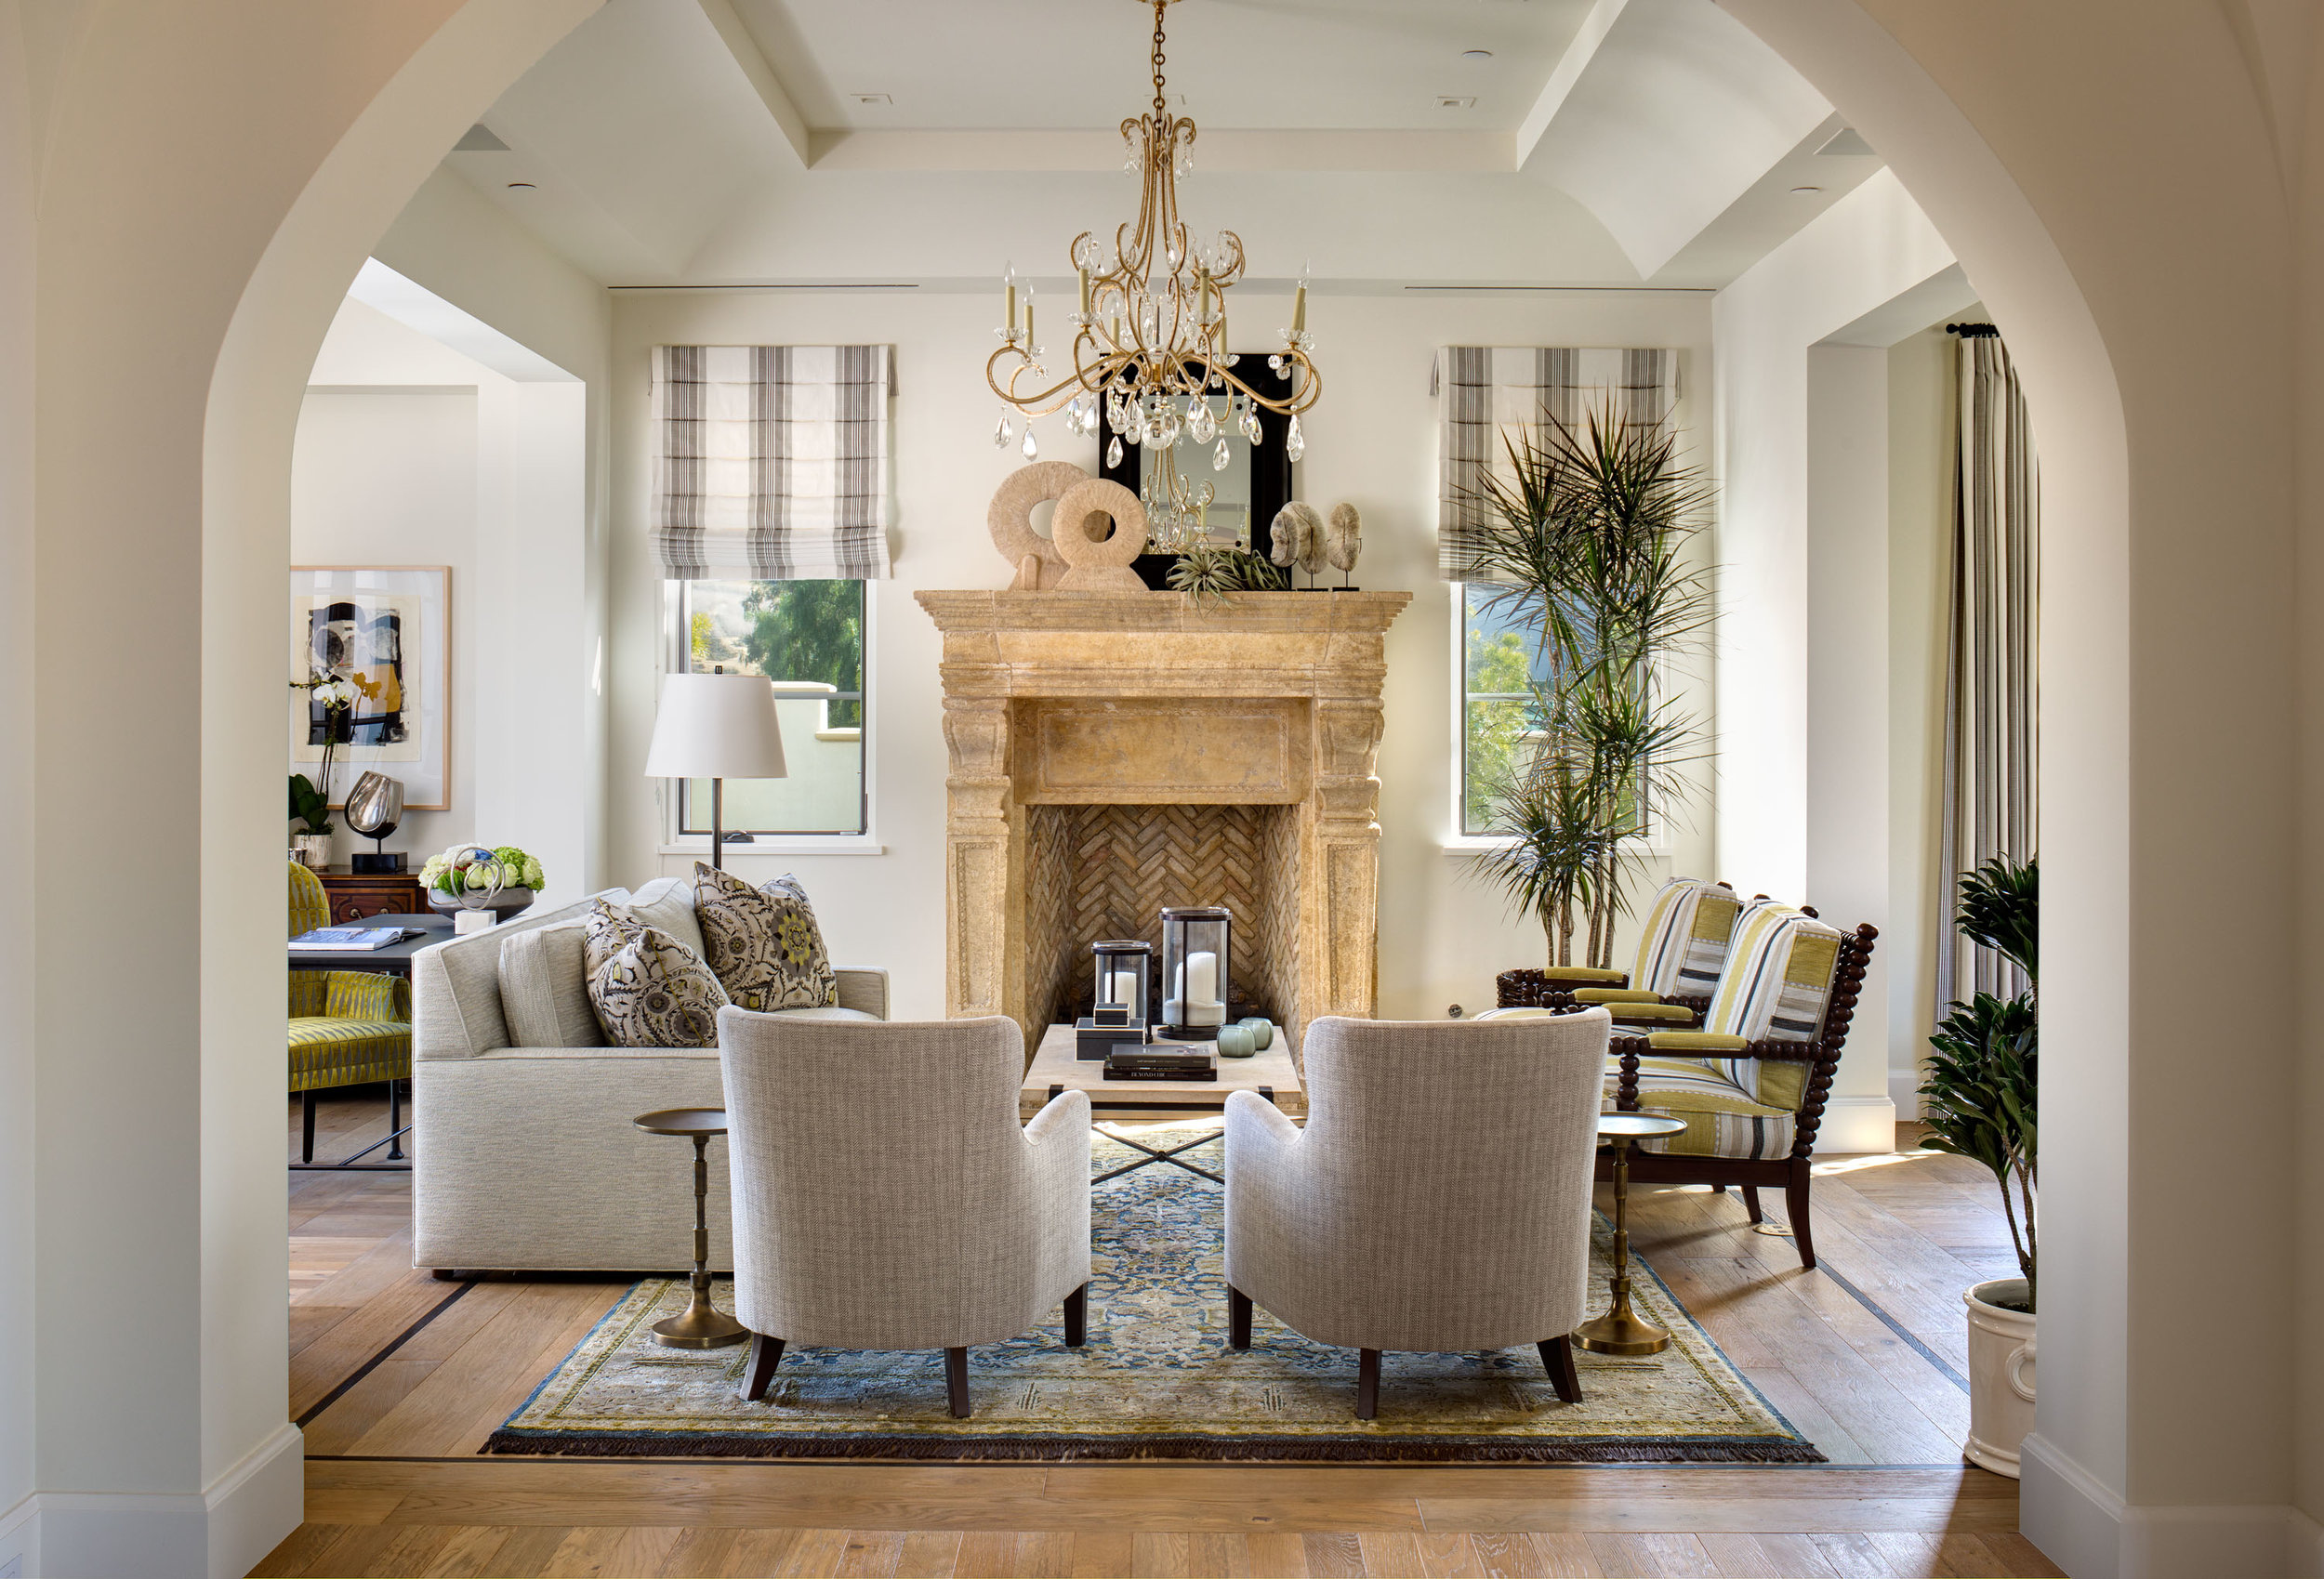 Newport Coast Santa Barbara Style Living Room by Oatman Architects.jpg